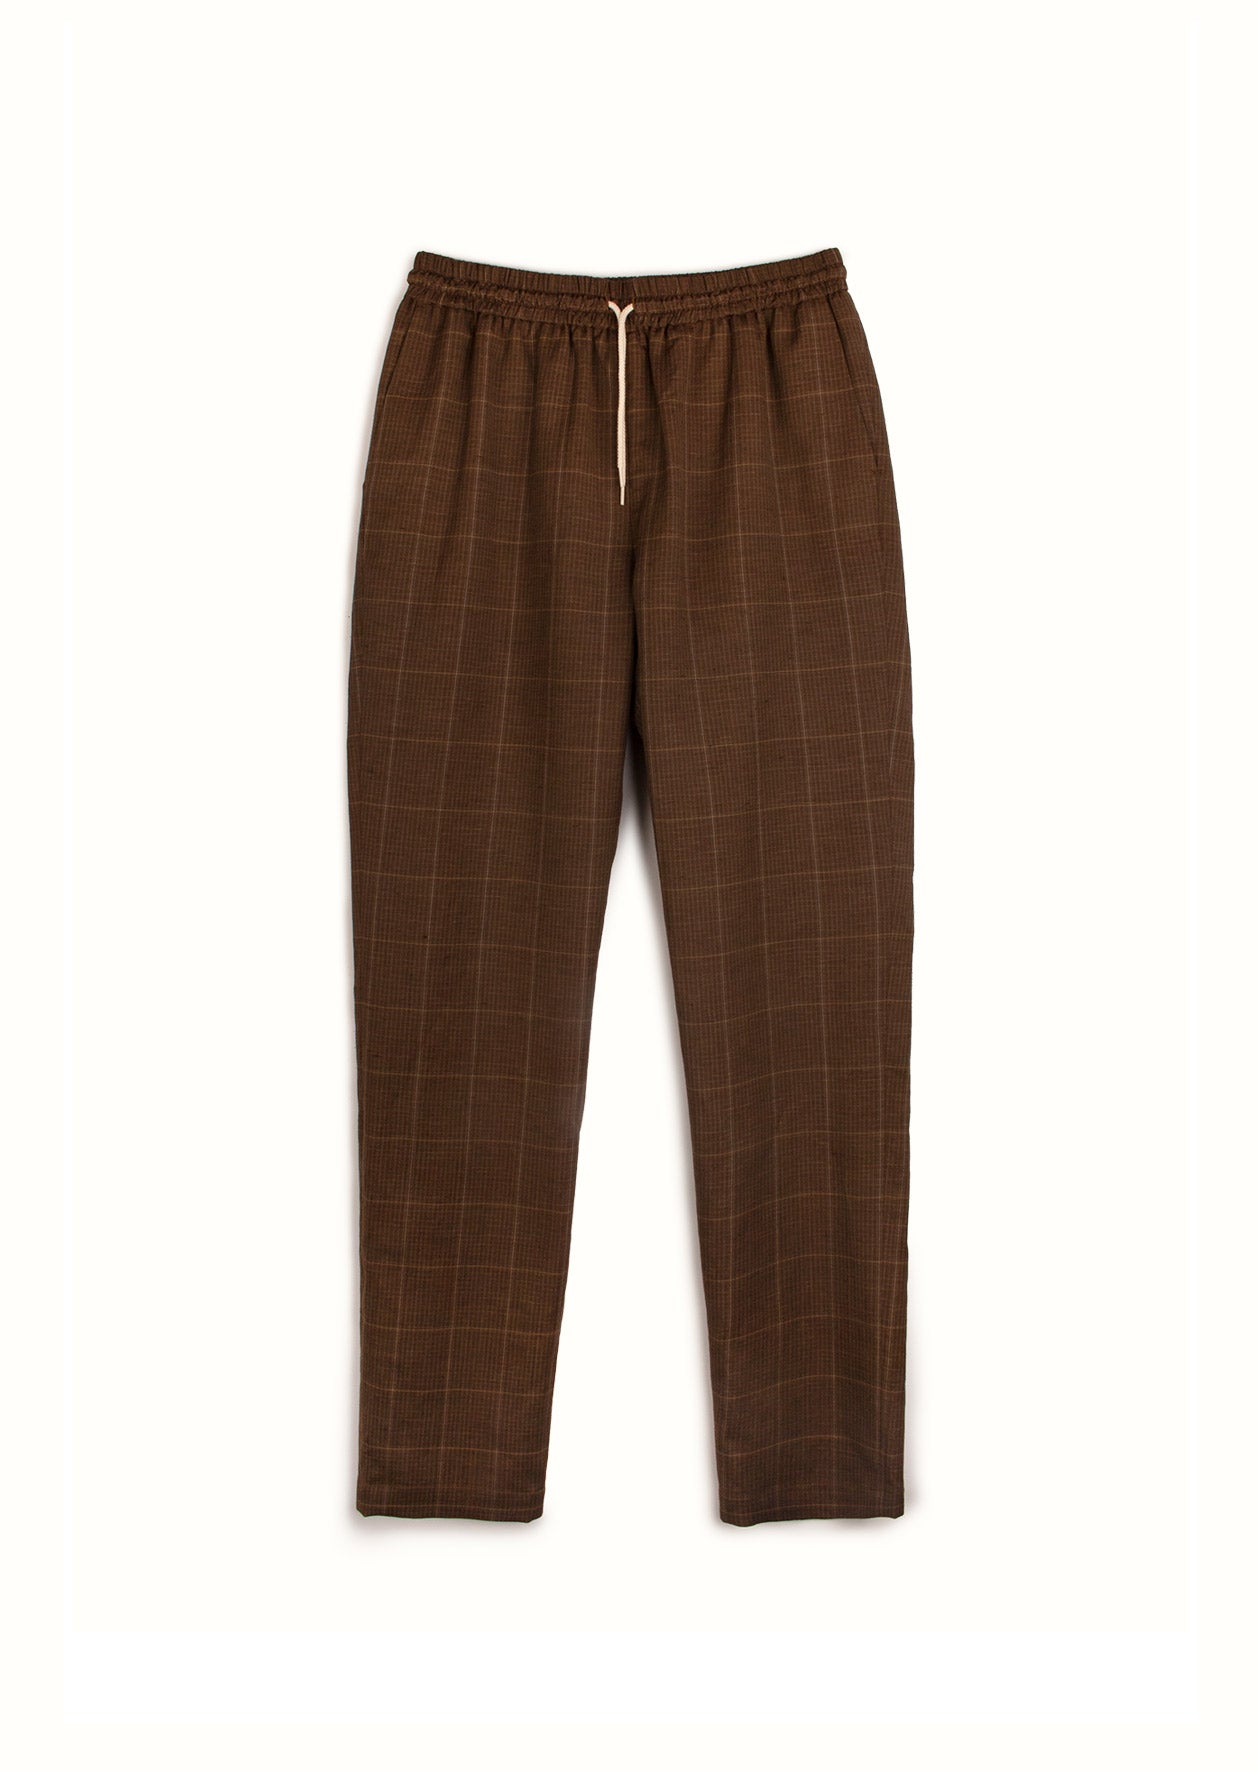 De Bonne Facture - -Easy trousers - Washed wool & linen - Taupe checks